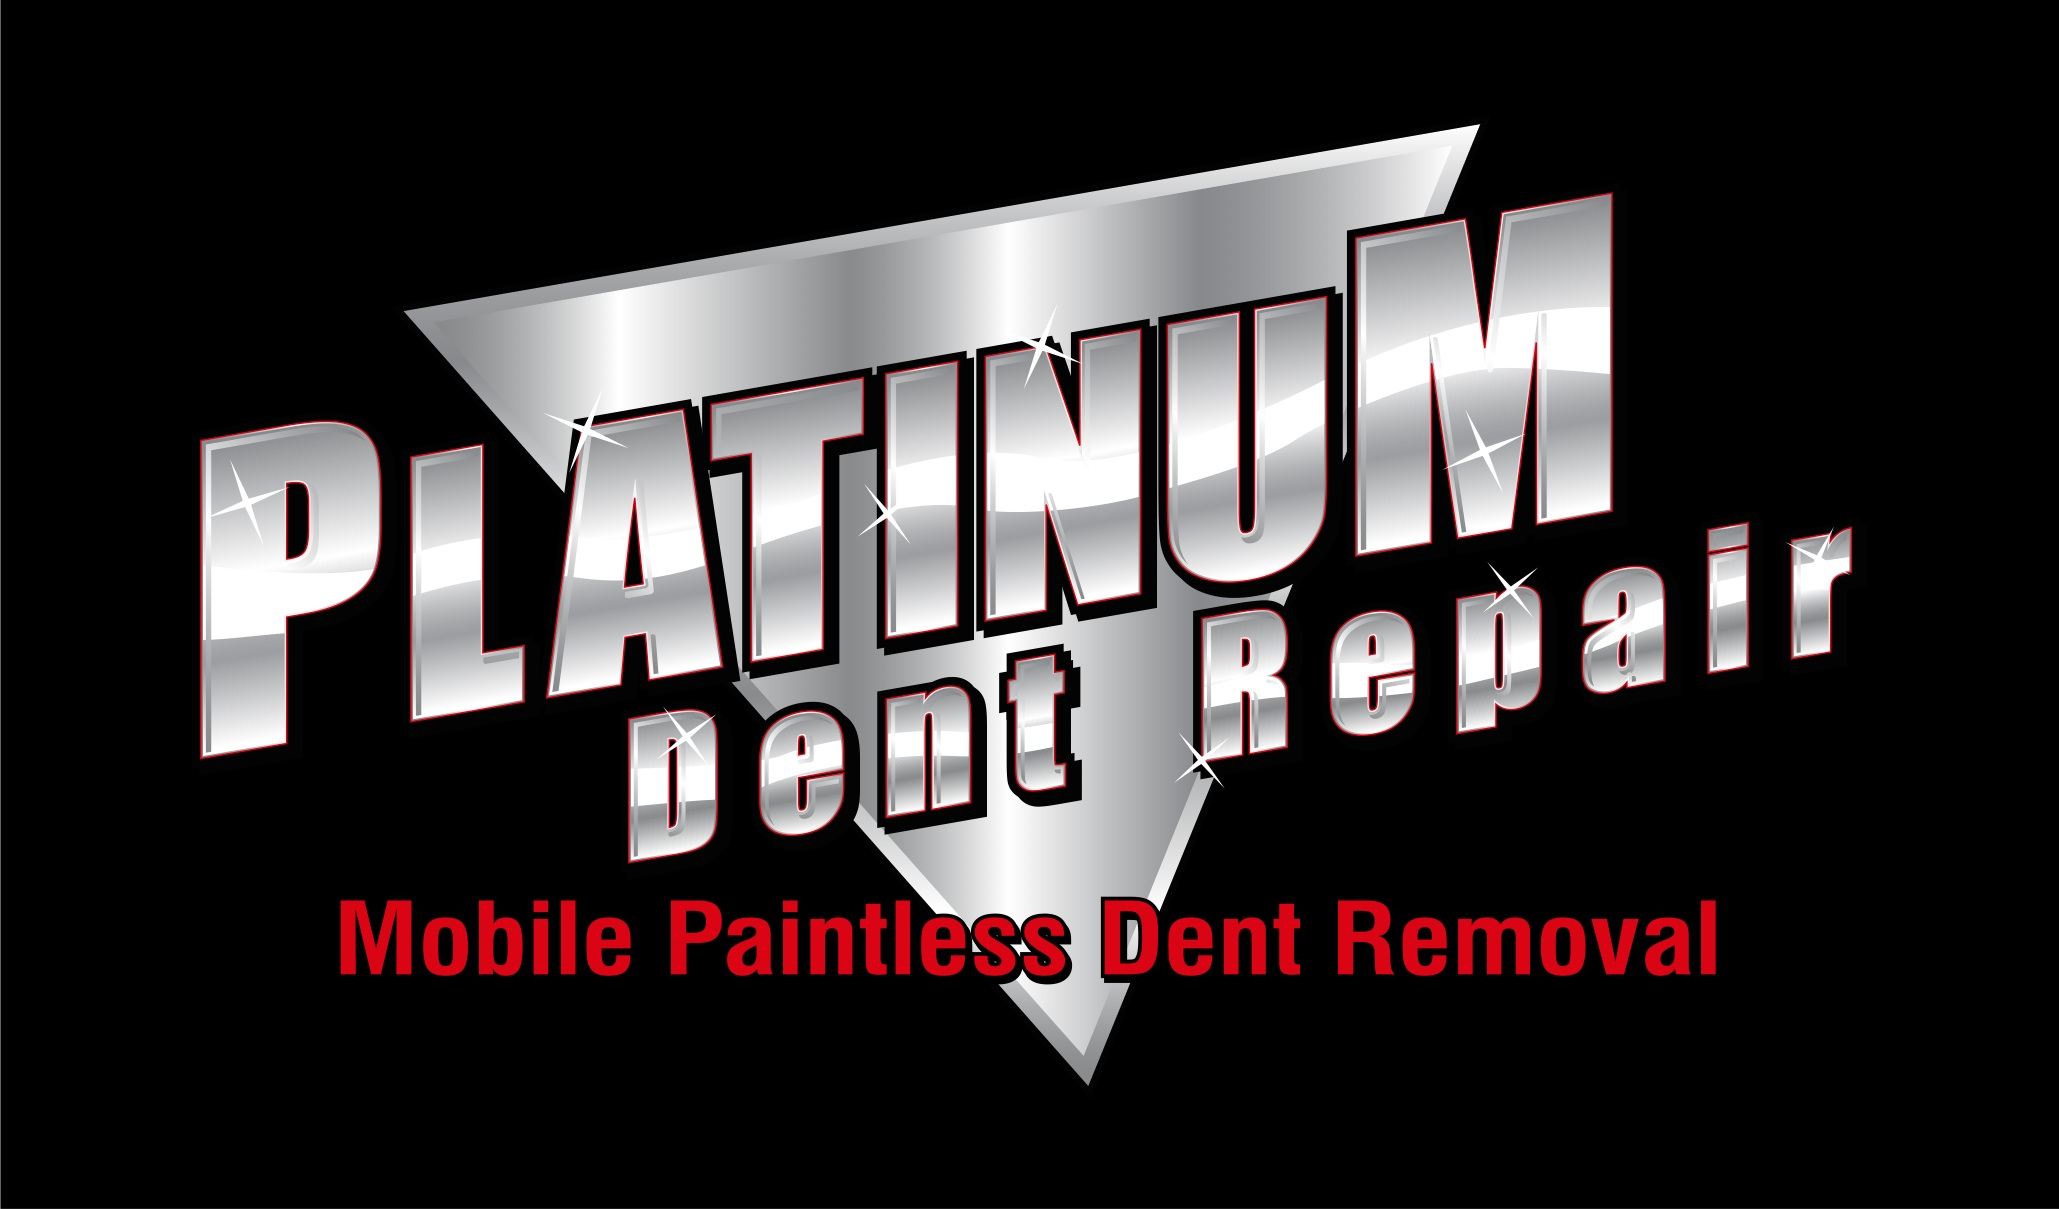 Platinum Dent Repair Logo copy.jpg